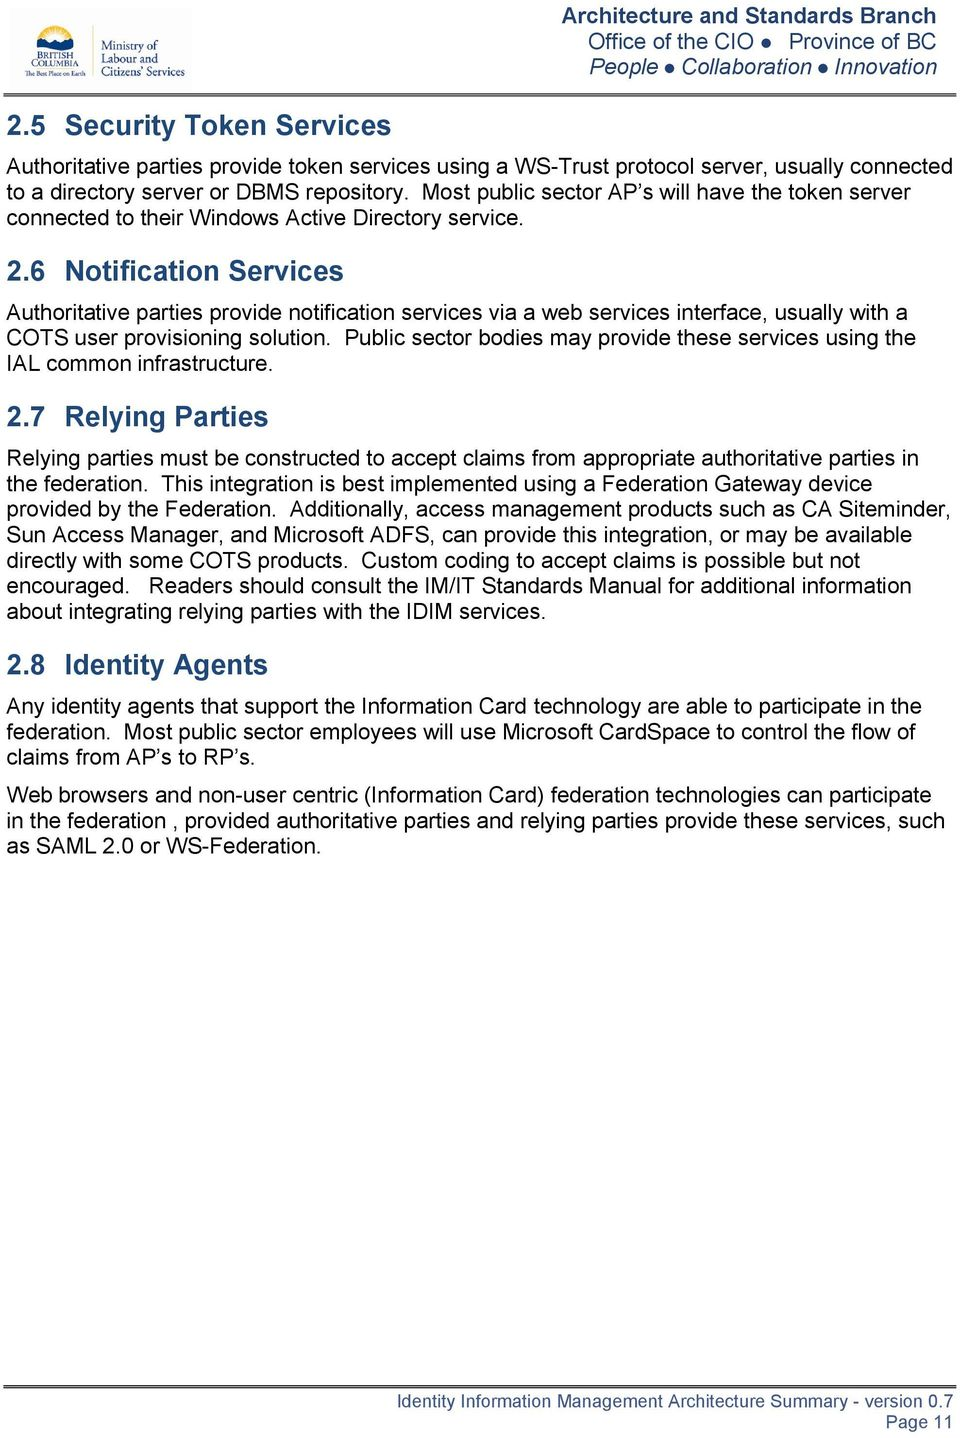 6 Notification Services Authoritative parties provide notification services via a web services interface, usually with a COTS user provisioning solution.